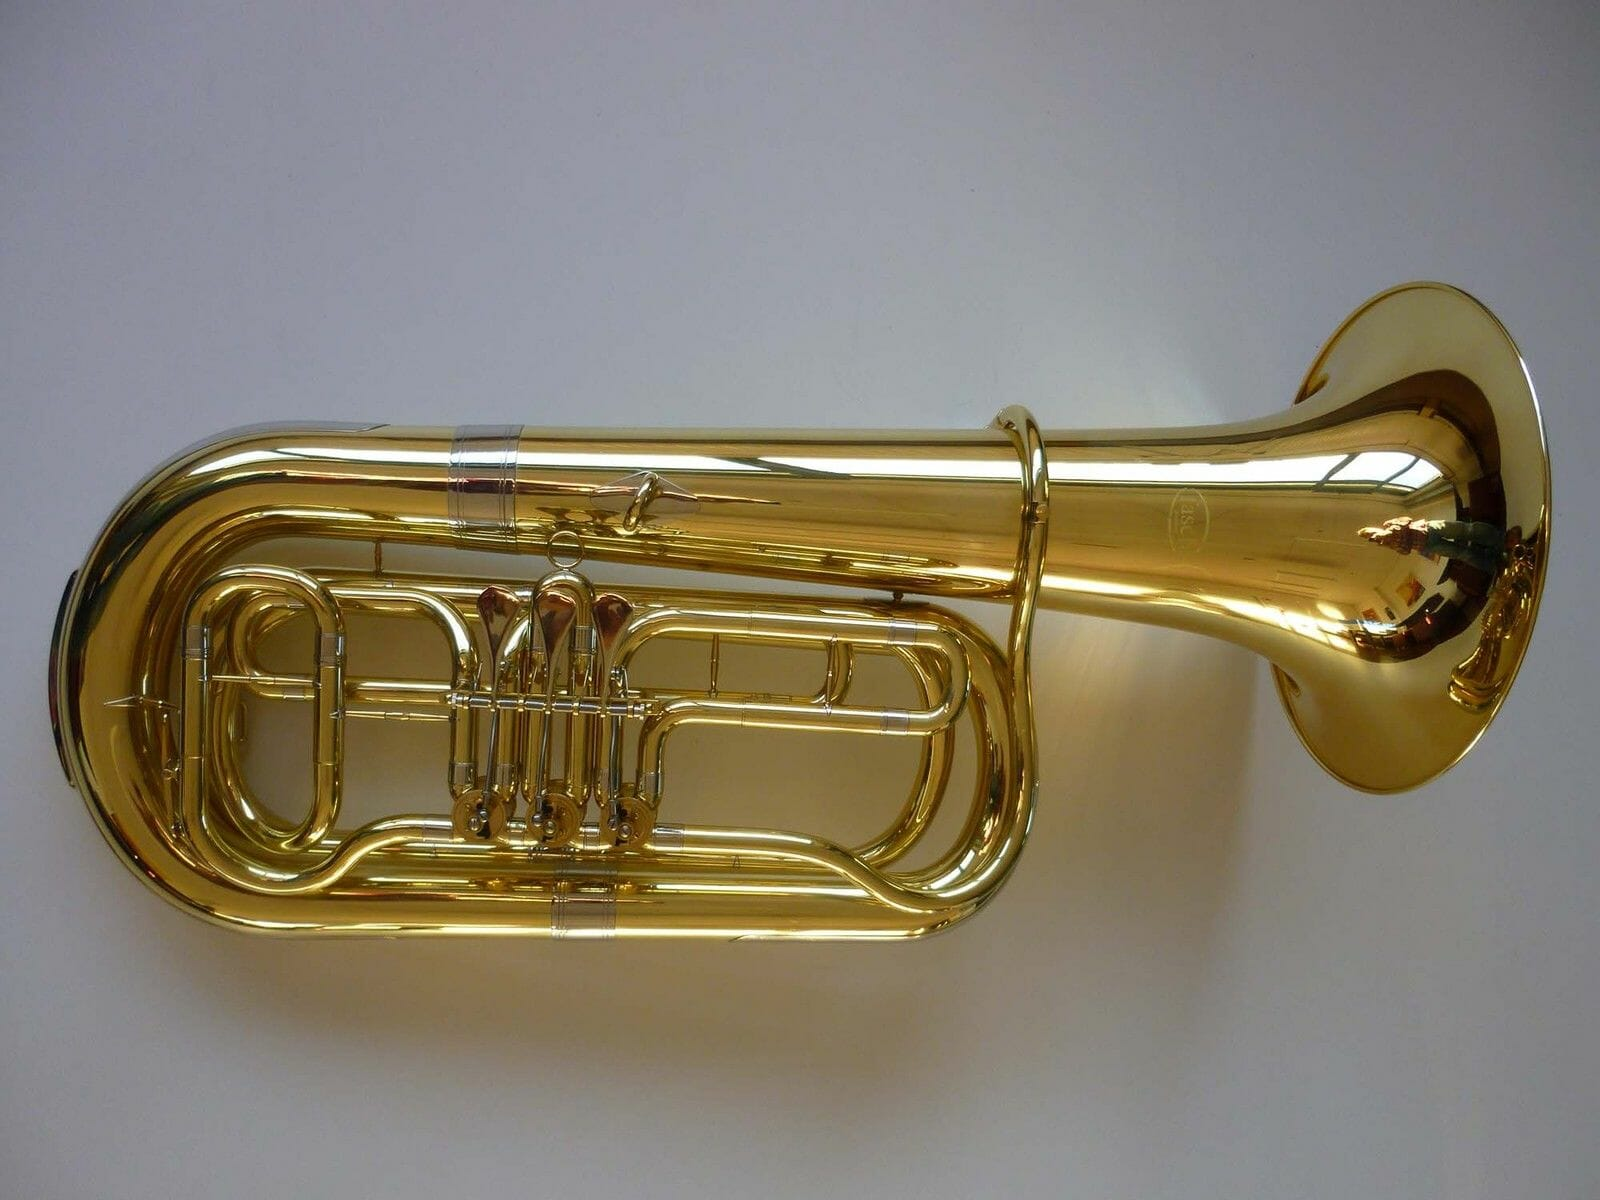 fasch-Tuba-in-Bb-FTP-300